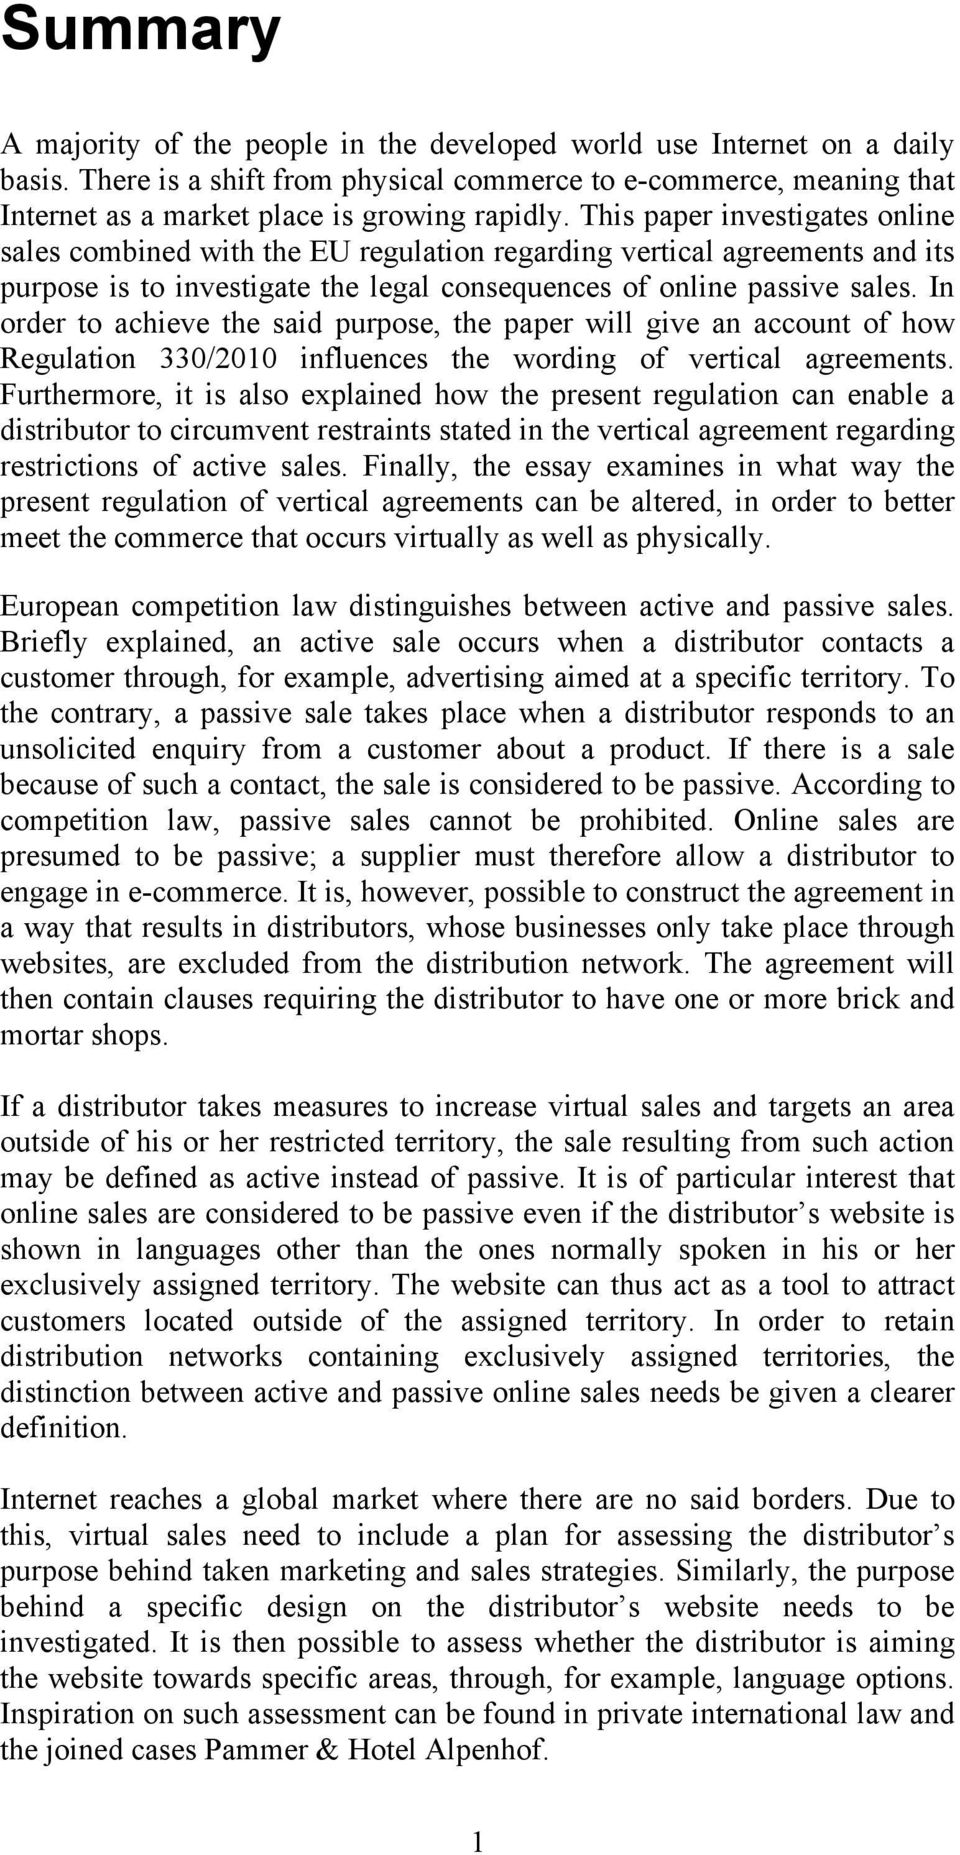 This paper investigates online sales combined with the EU regulation regarding vertical agreements and its purpose is to investigate the legal consequences of online passive sales.